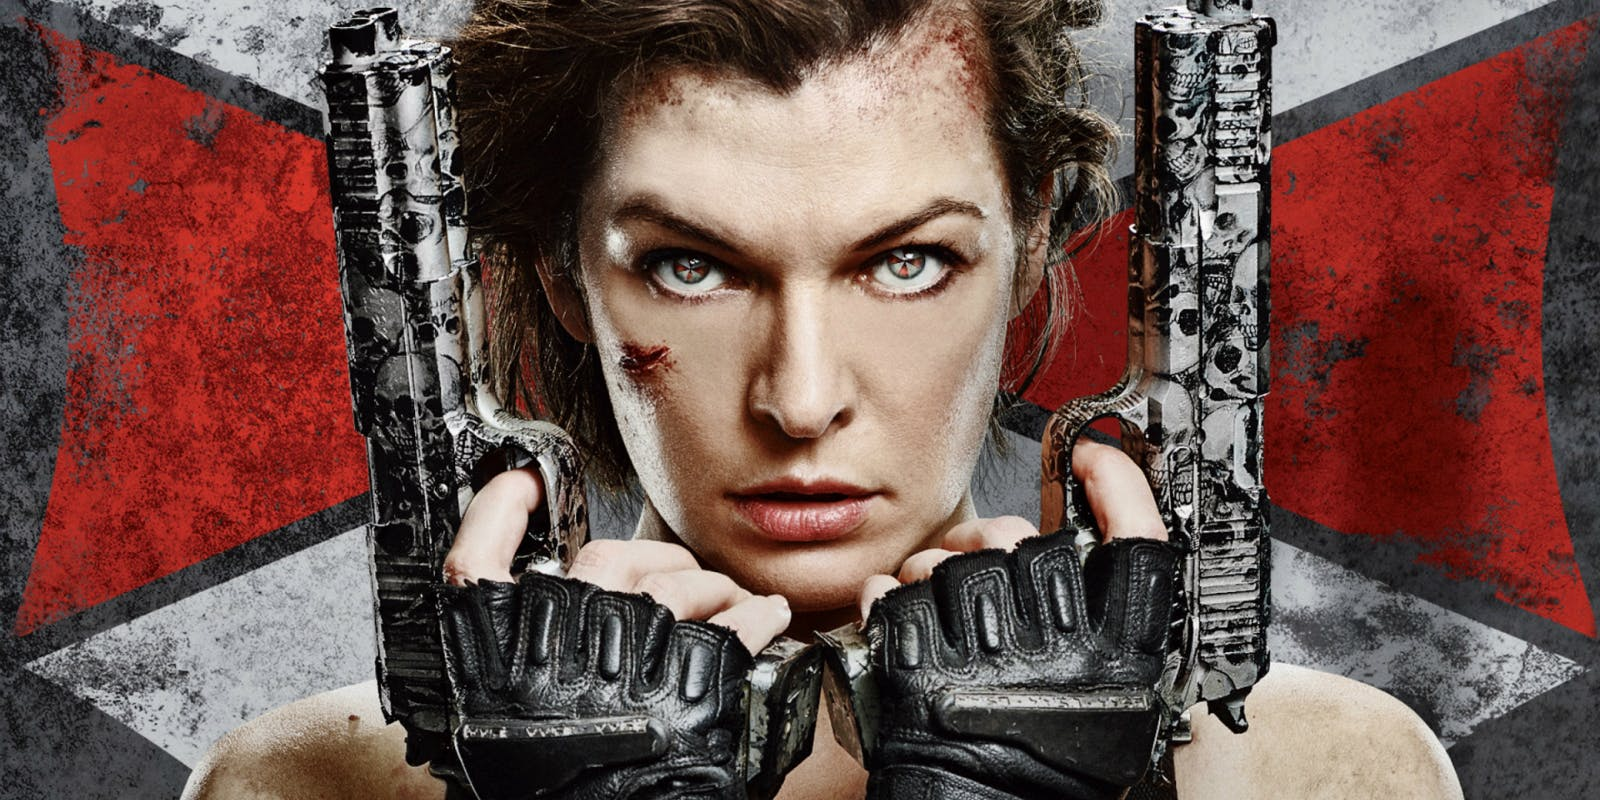 Resident Evil Tv Series In Early Development At Netflix